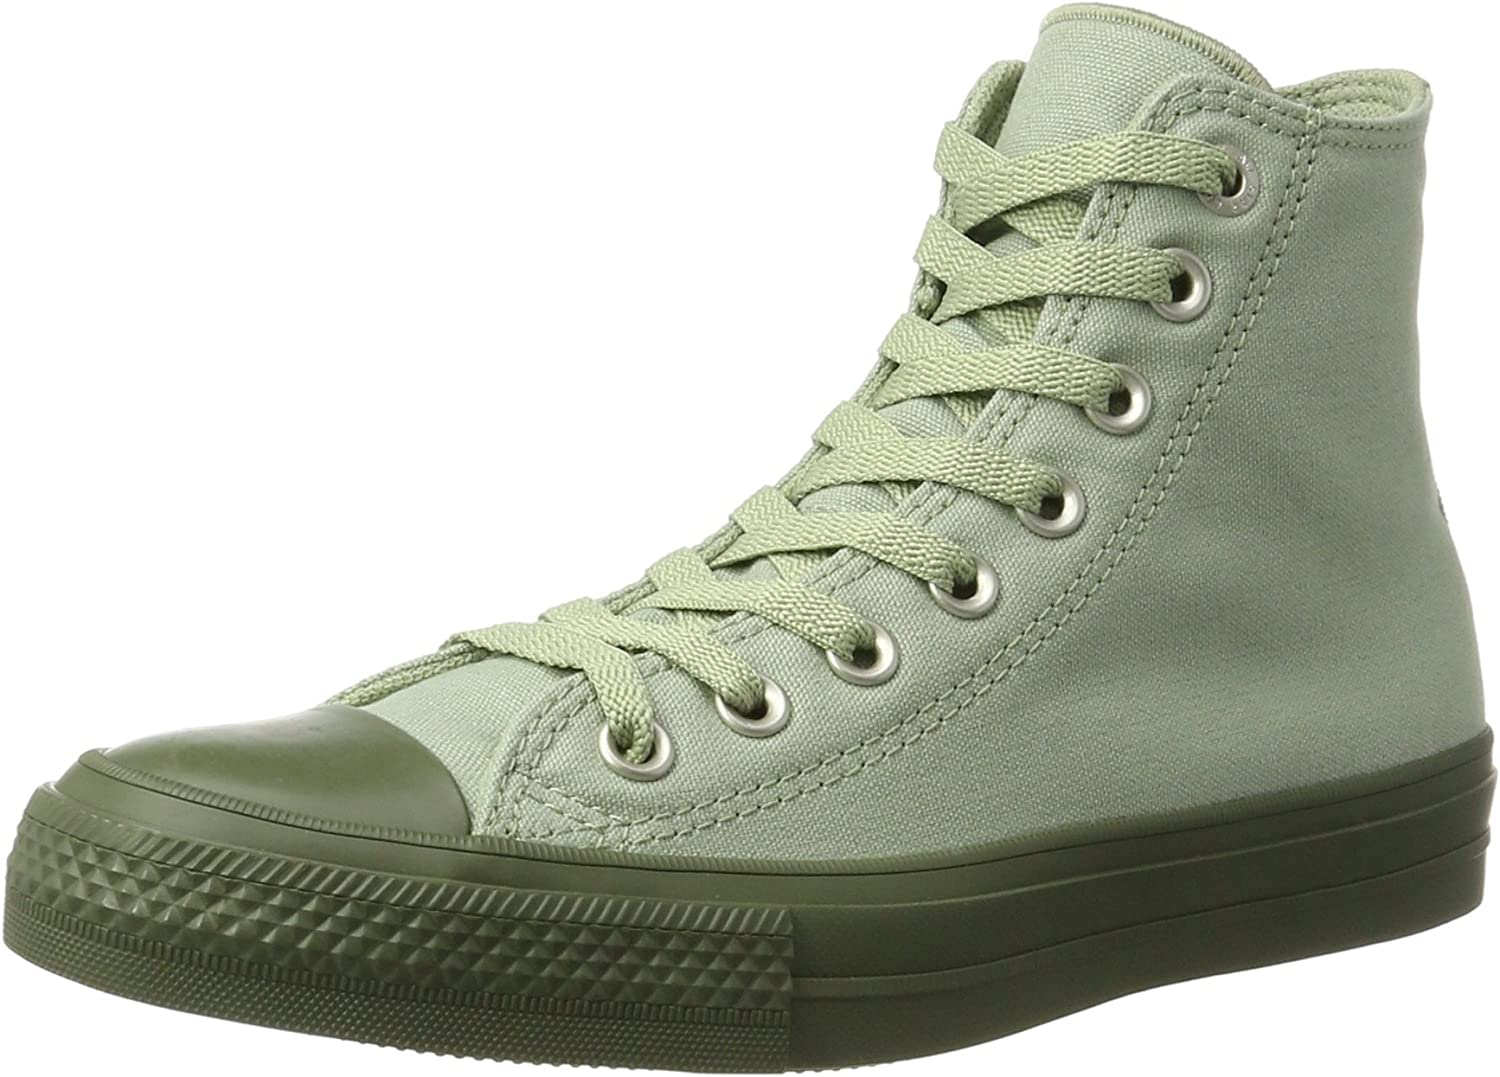 Converse Unisex Adults' Chuck Taylor All Star Ii Contrast High Hi-Top Trainers